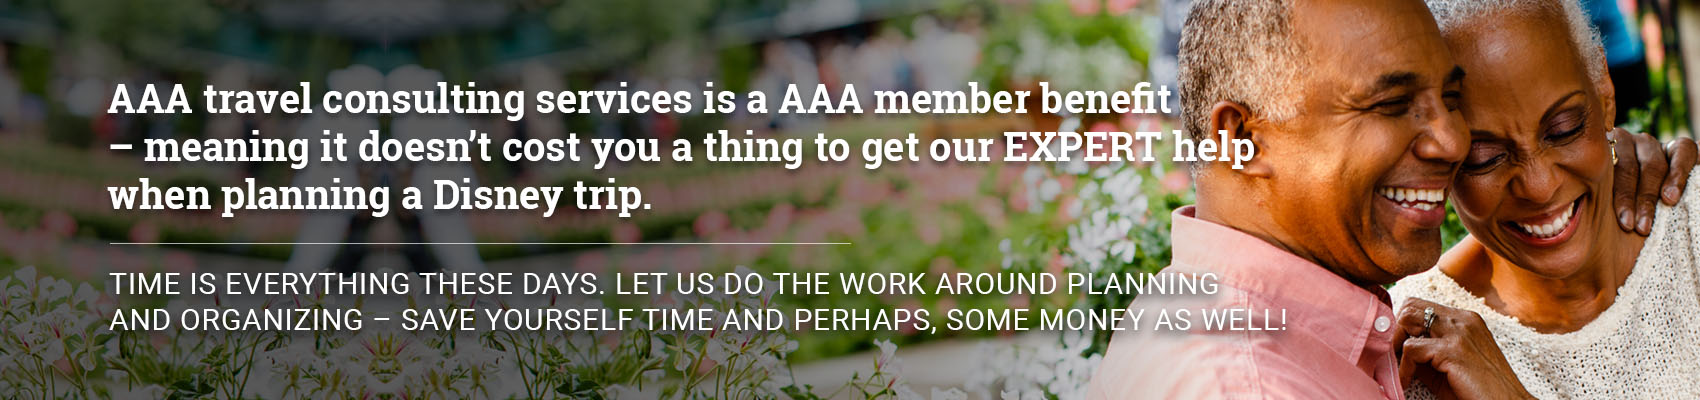 Travel consulting services is a AAA member benefit